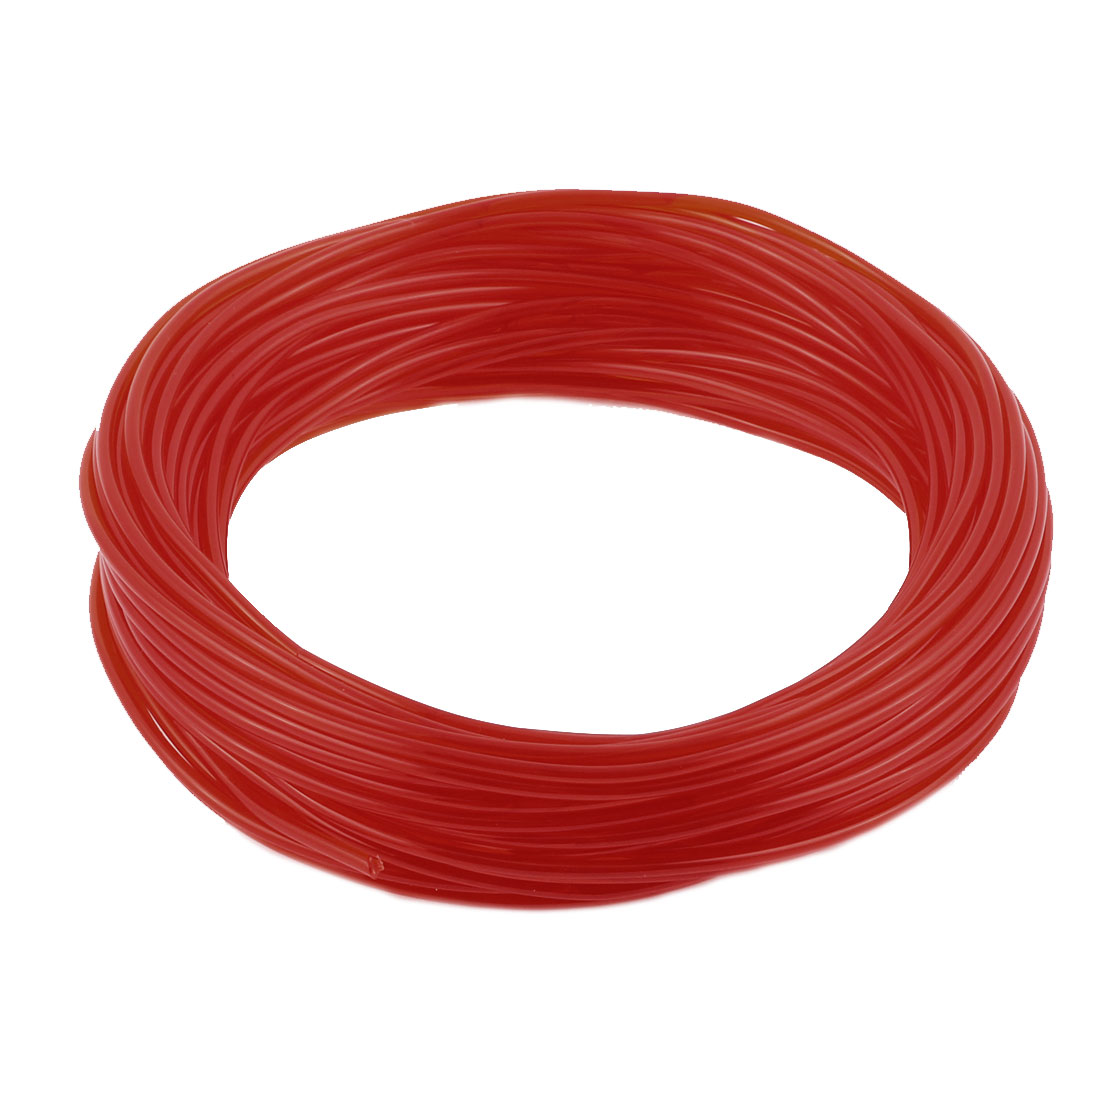 10m 3D Printer Pen Painting Filament Refills PLA Printing Material Transparent Red